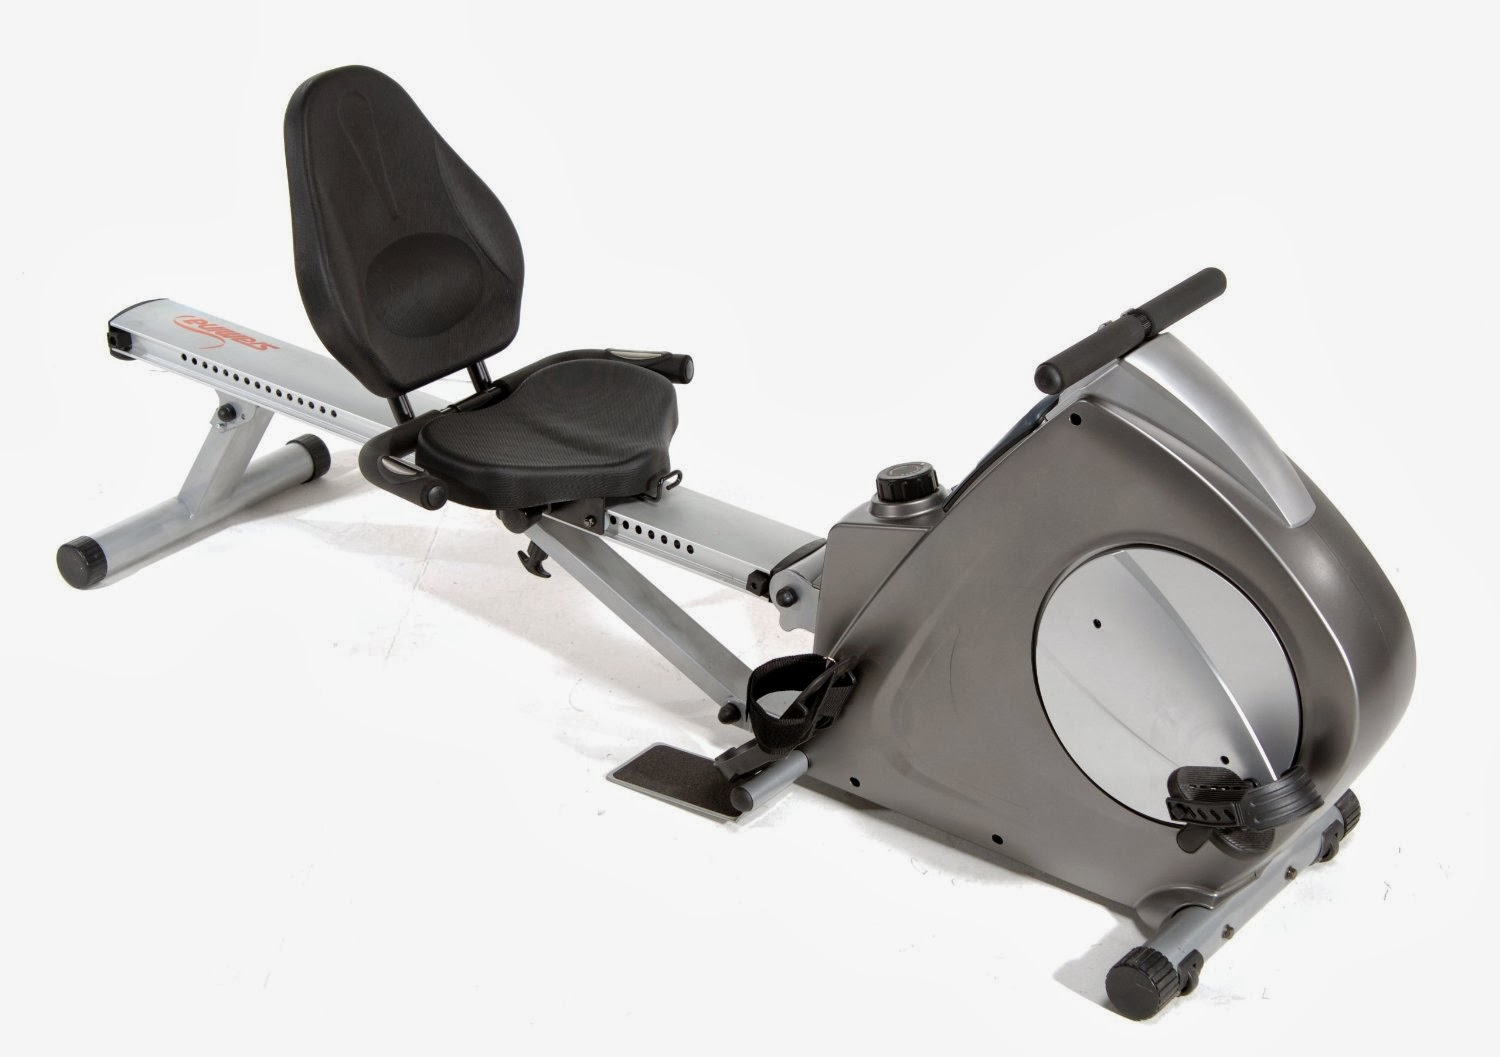 Stamina 15-9003 Deluxe Conversion II Recumbent/Rower, picture, review features & specifications